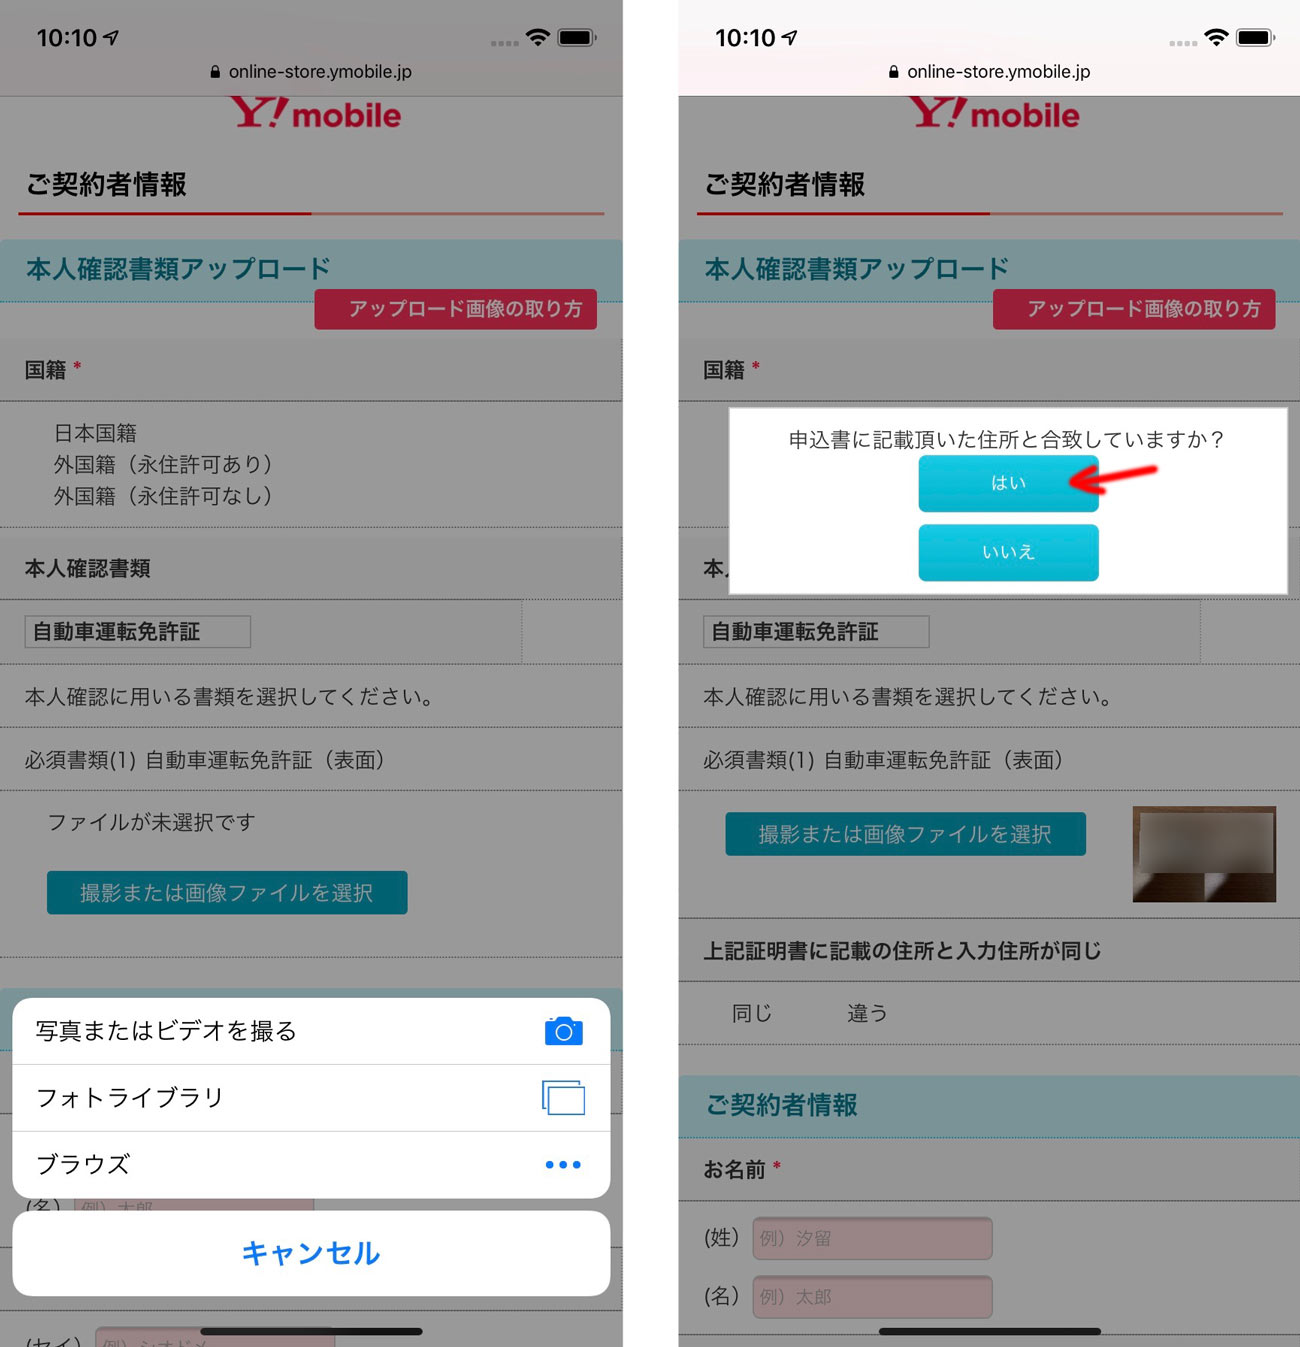 Y!mobile 申し込み手続き手順5